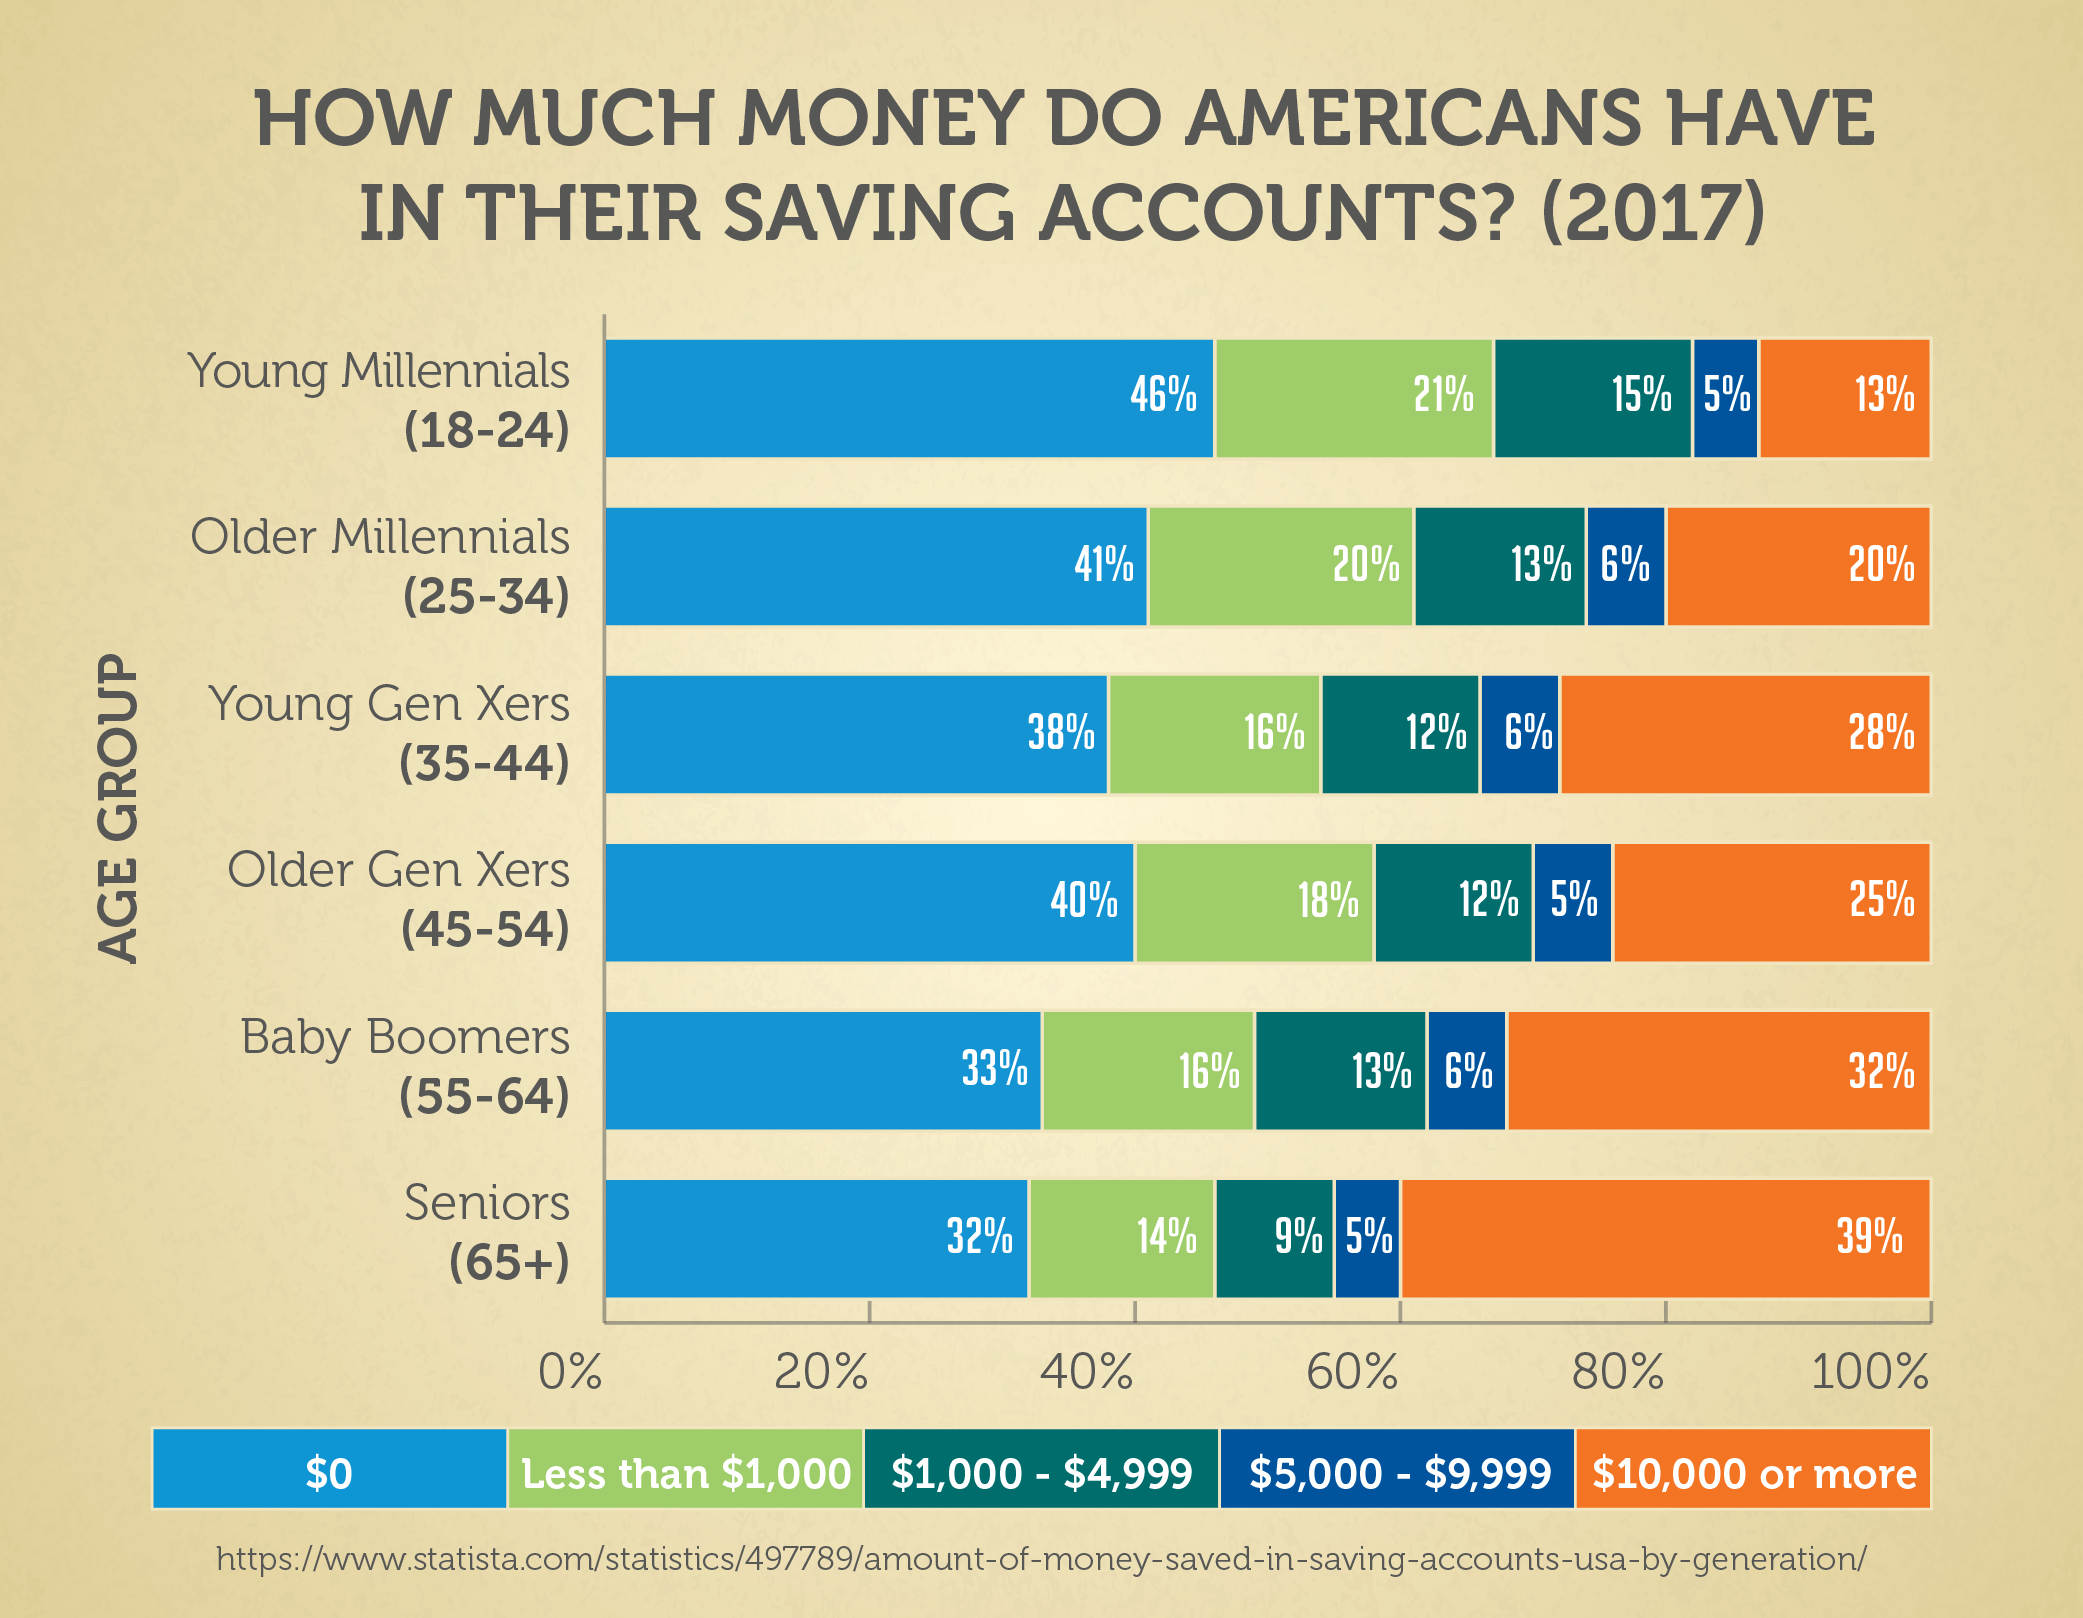 How Much Money Do Americans Have In Their Saving Accounts? (2017)